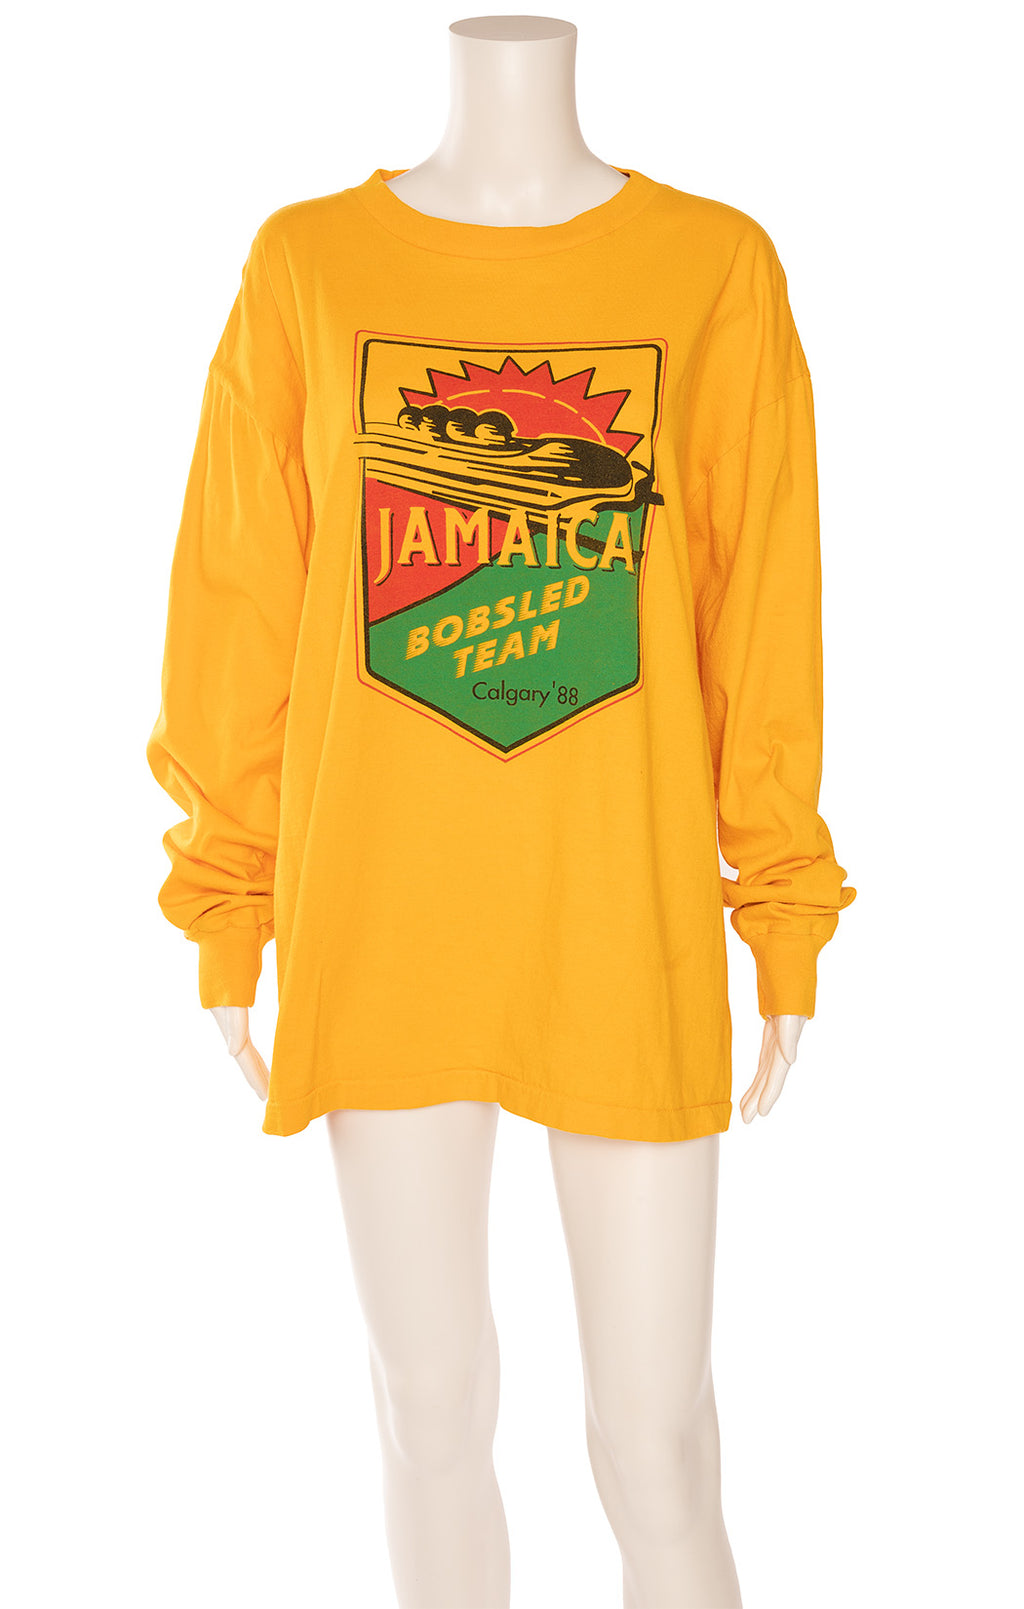 Sunflower yellow/orange long sleeve t-shirt with color graphics